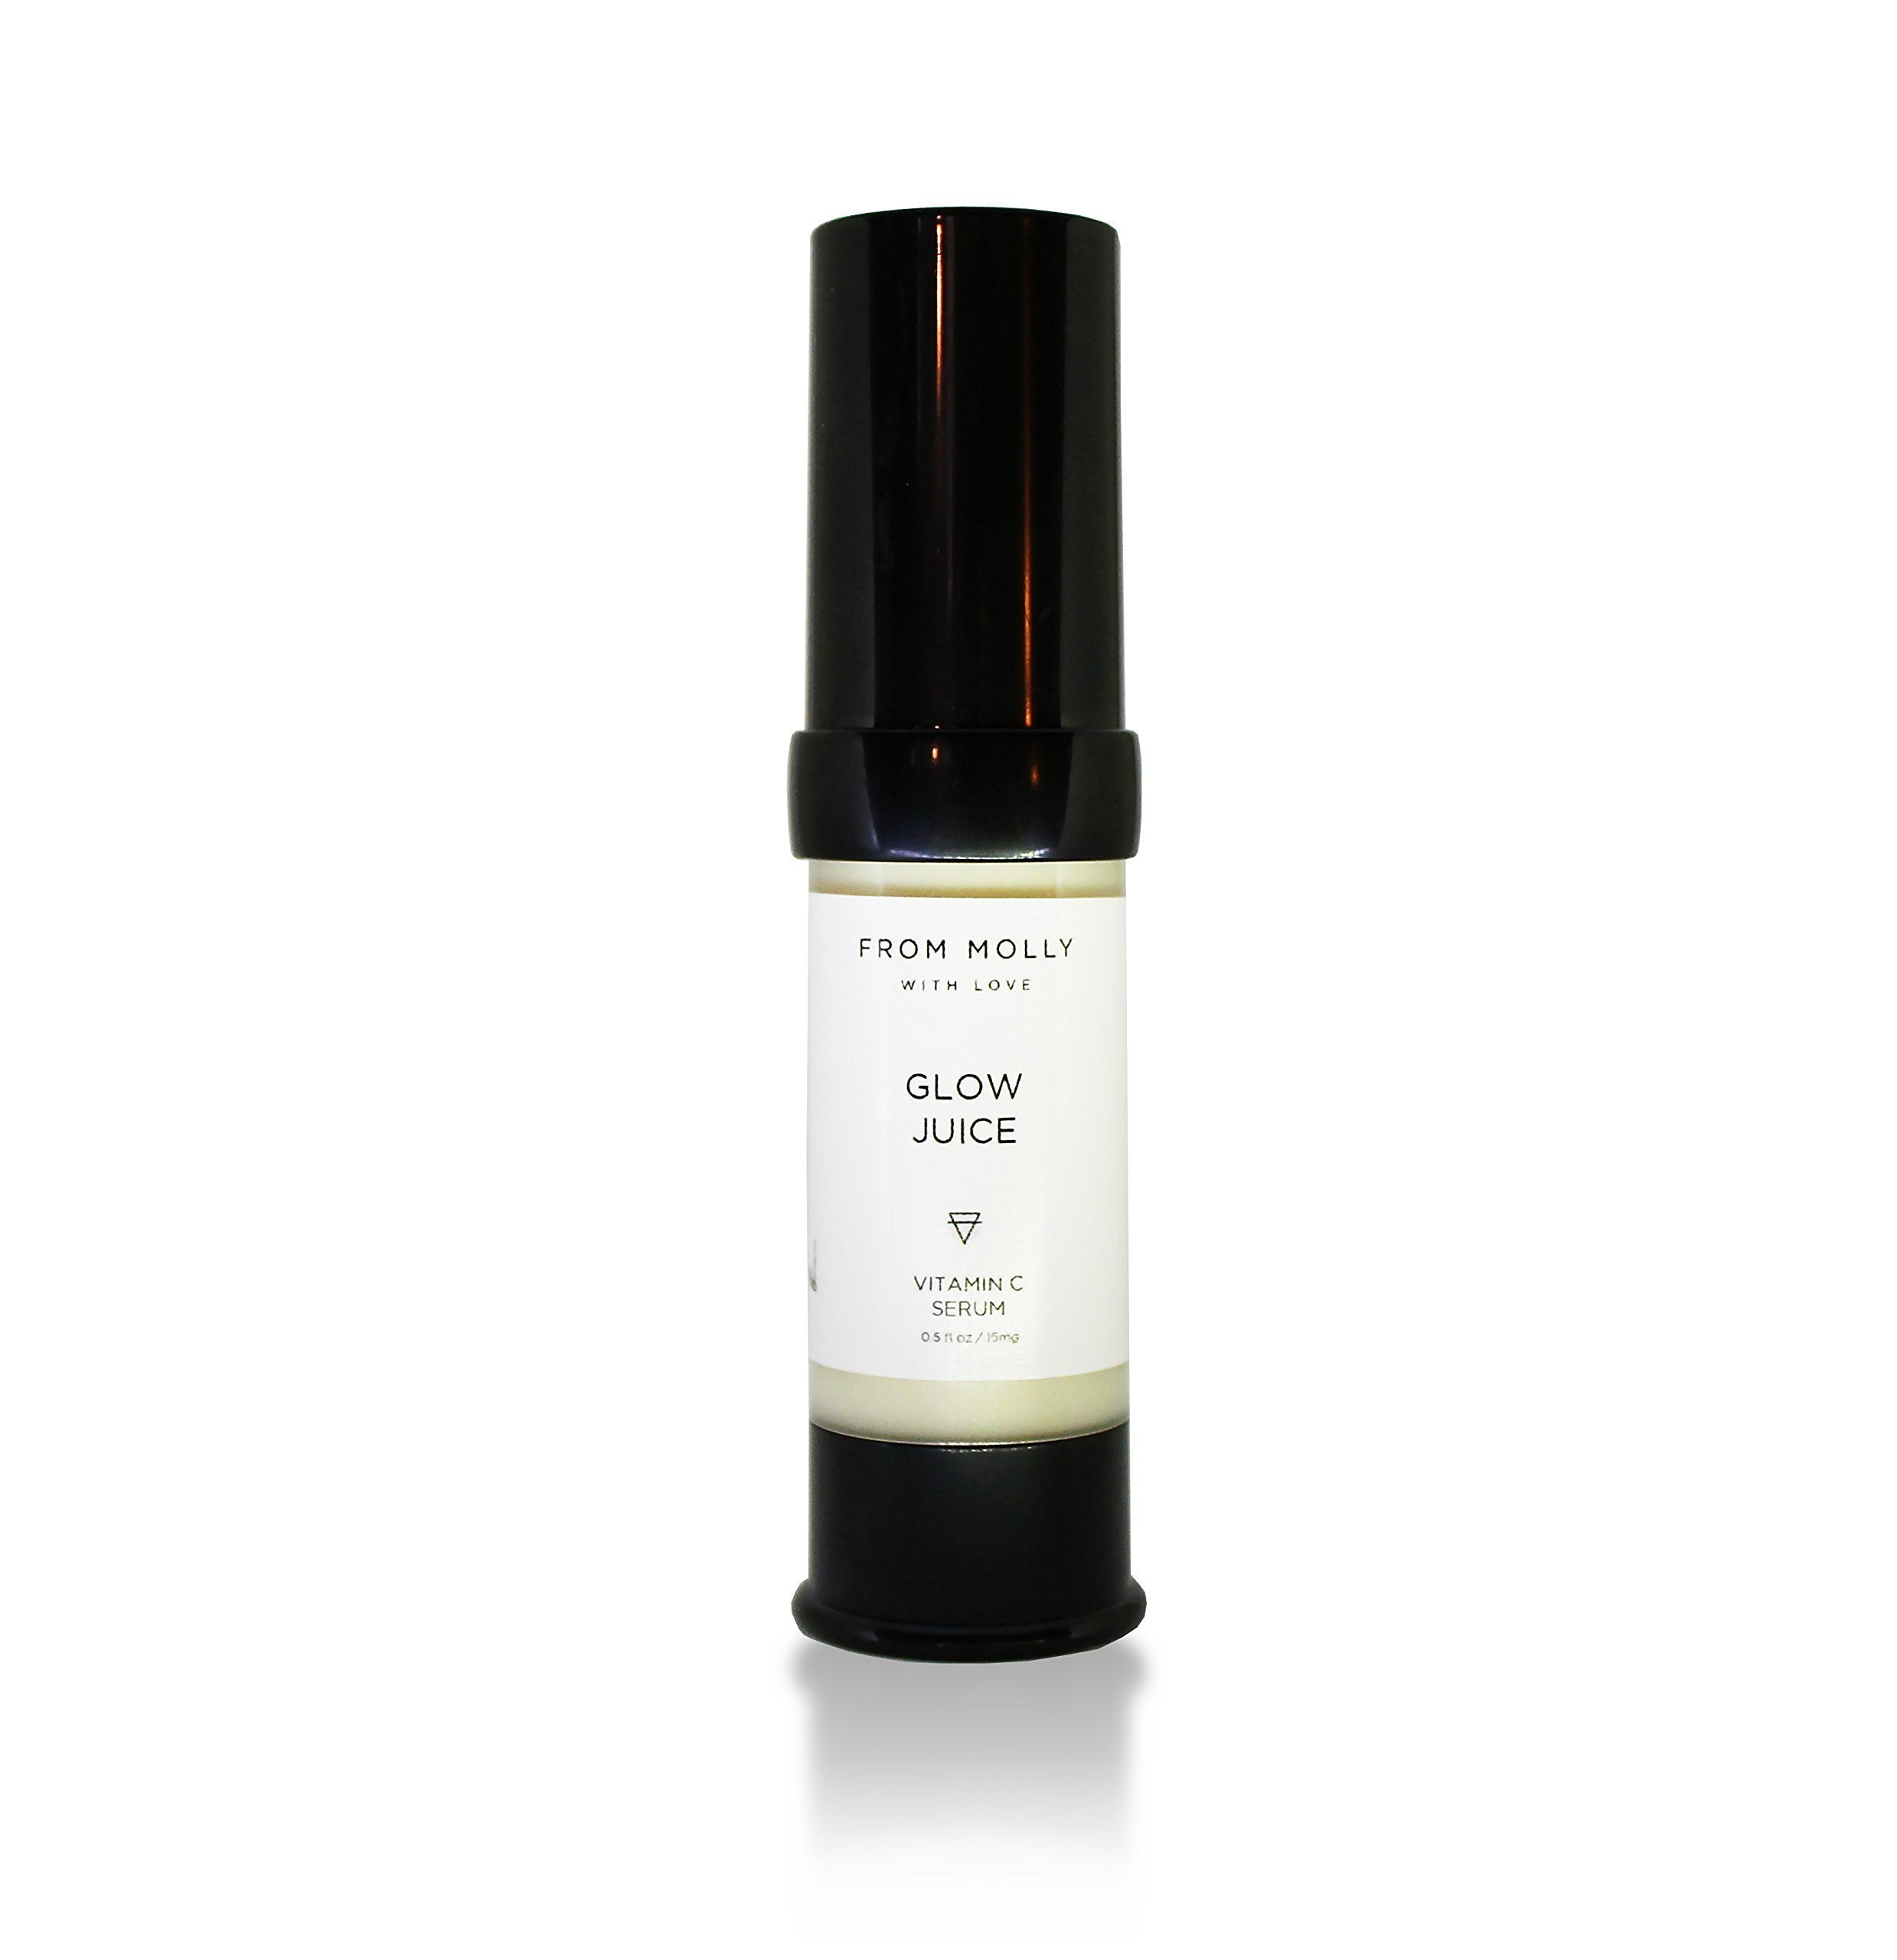 Glow Juice Vitamin C Serum for Face - for skin brightening, Anti Wrinkle, Anti Aging, Firming and Skin Tone